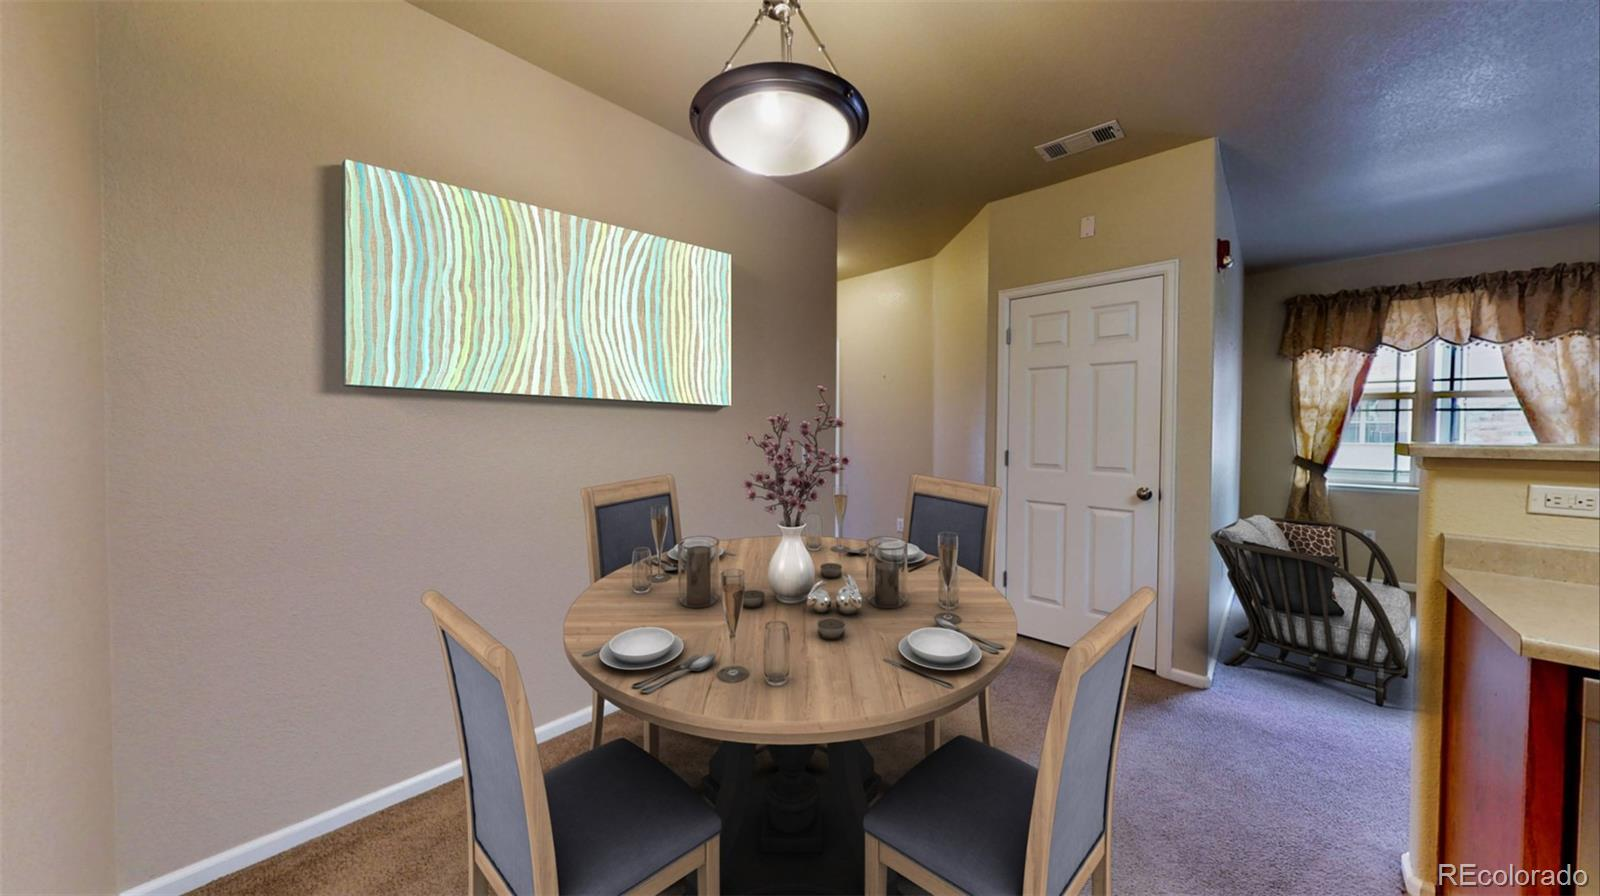 MLS# 3562922 - 5 - 8123 W 51st Place #202, Arvada, CO 80002